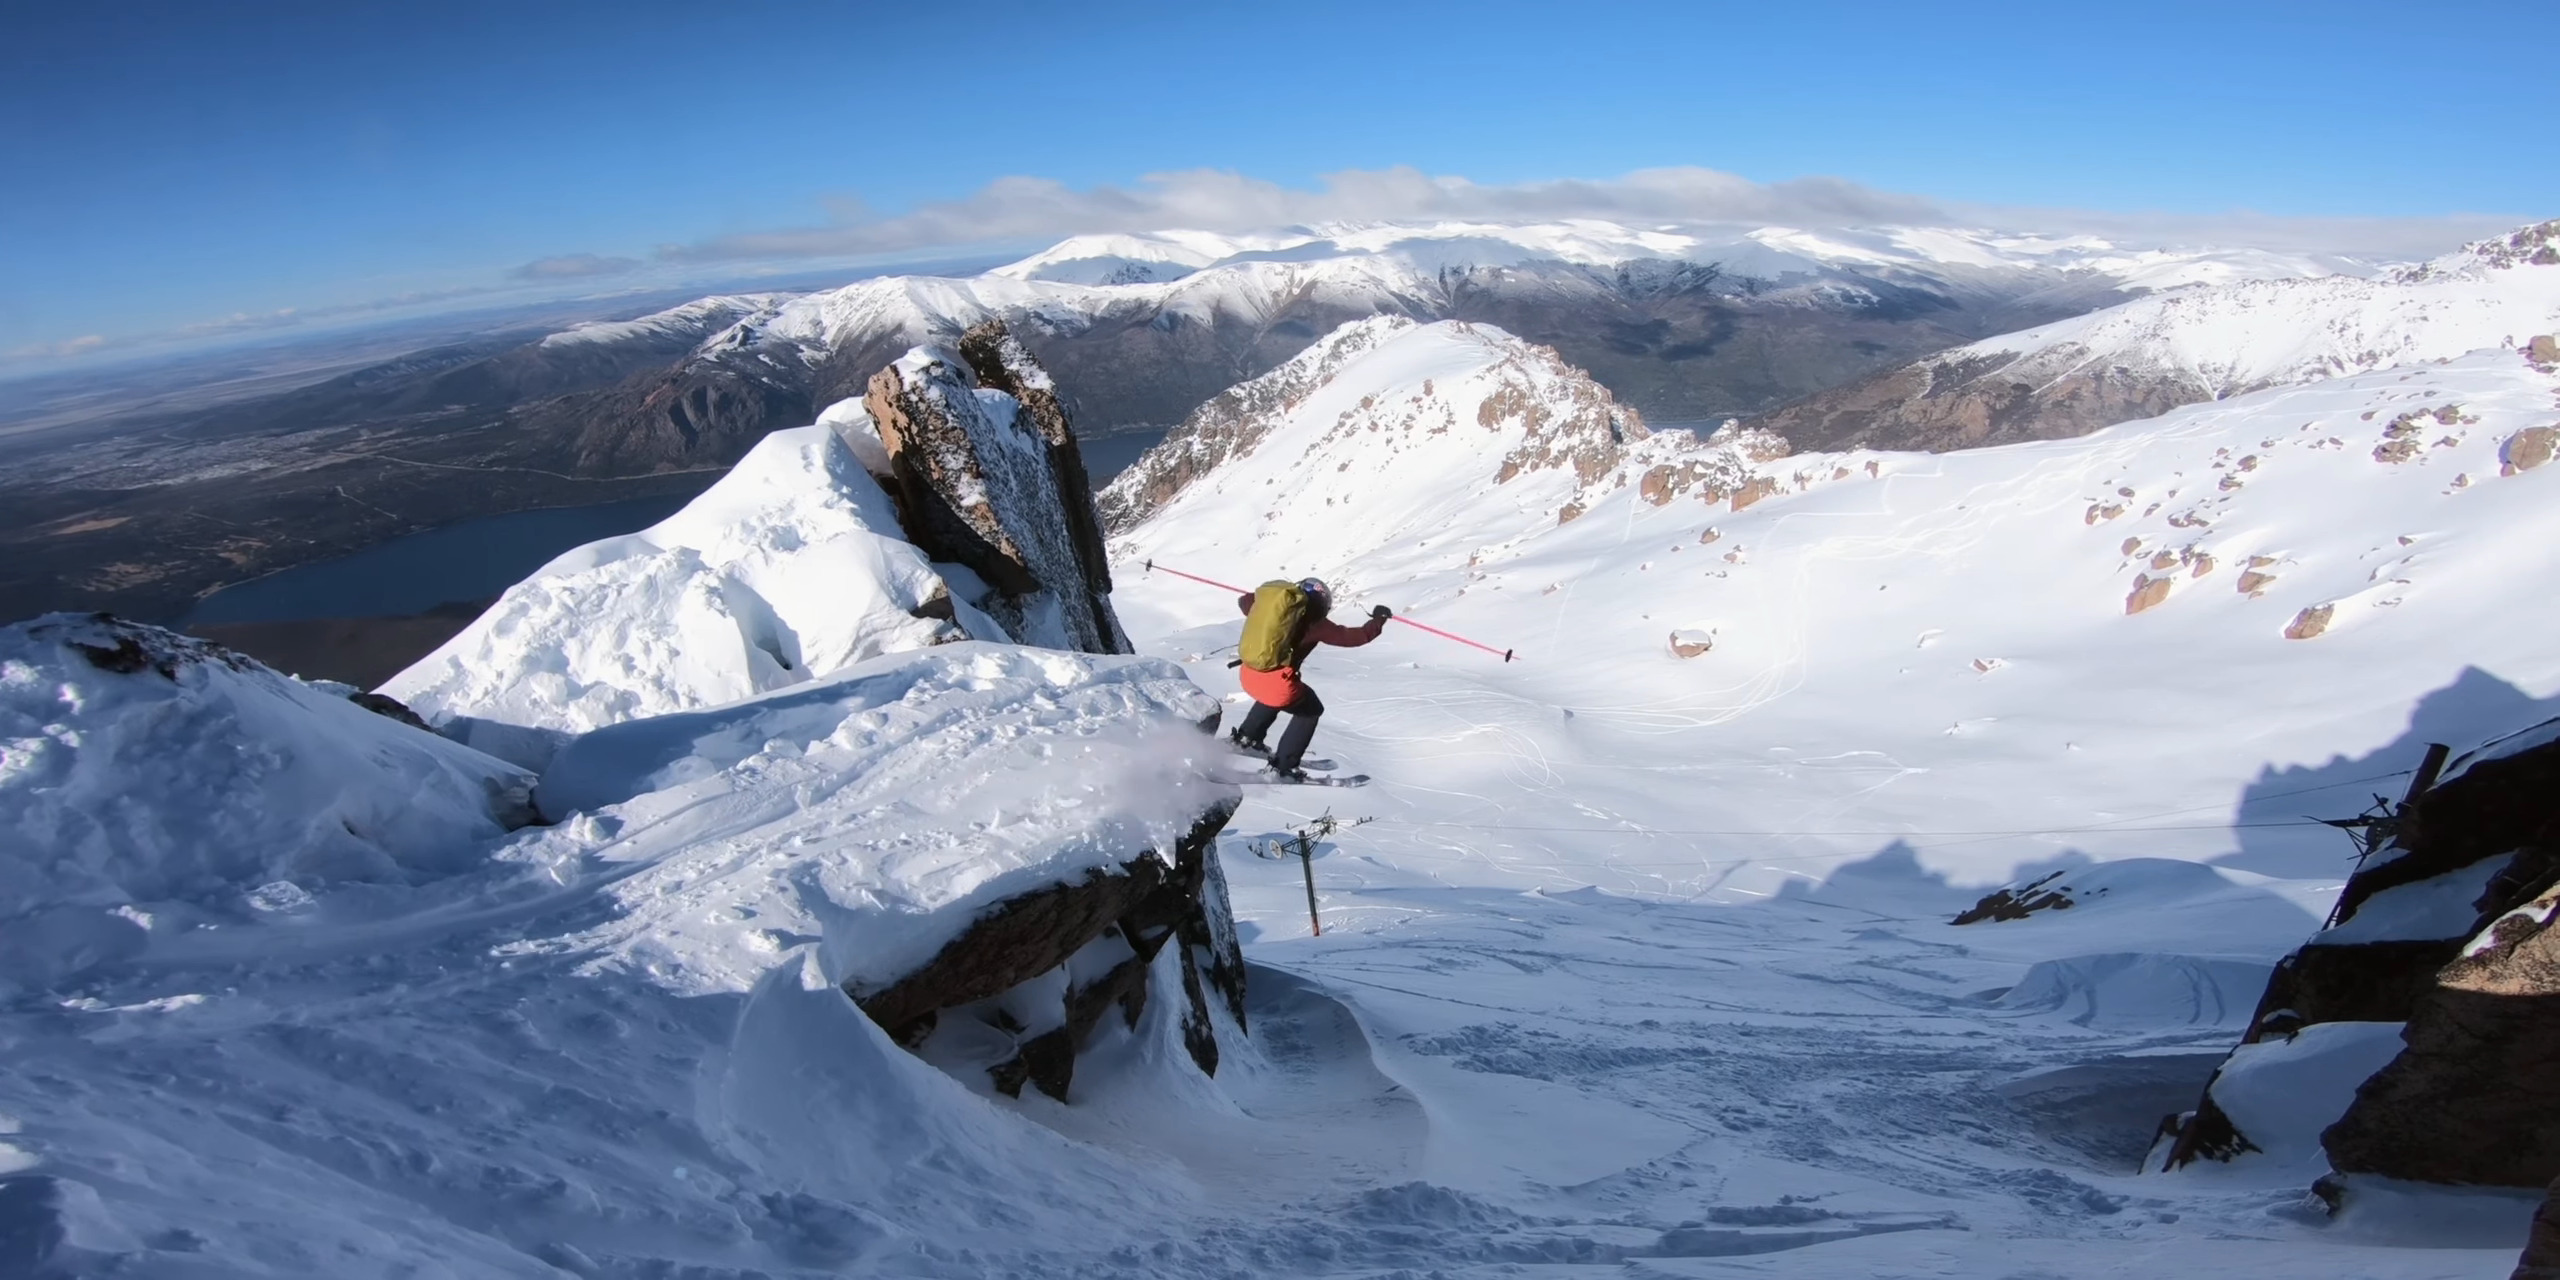 The Skier's Guide to South America